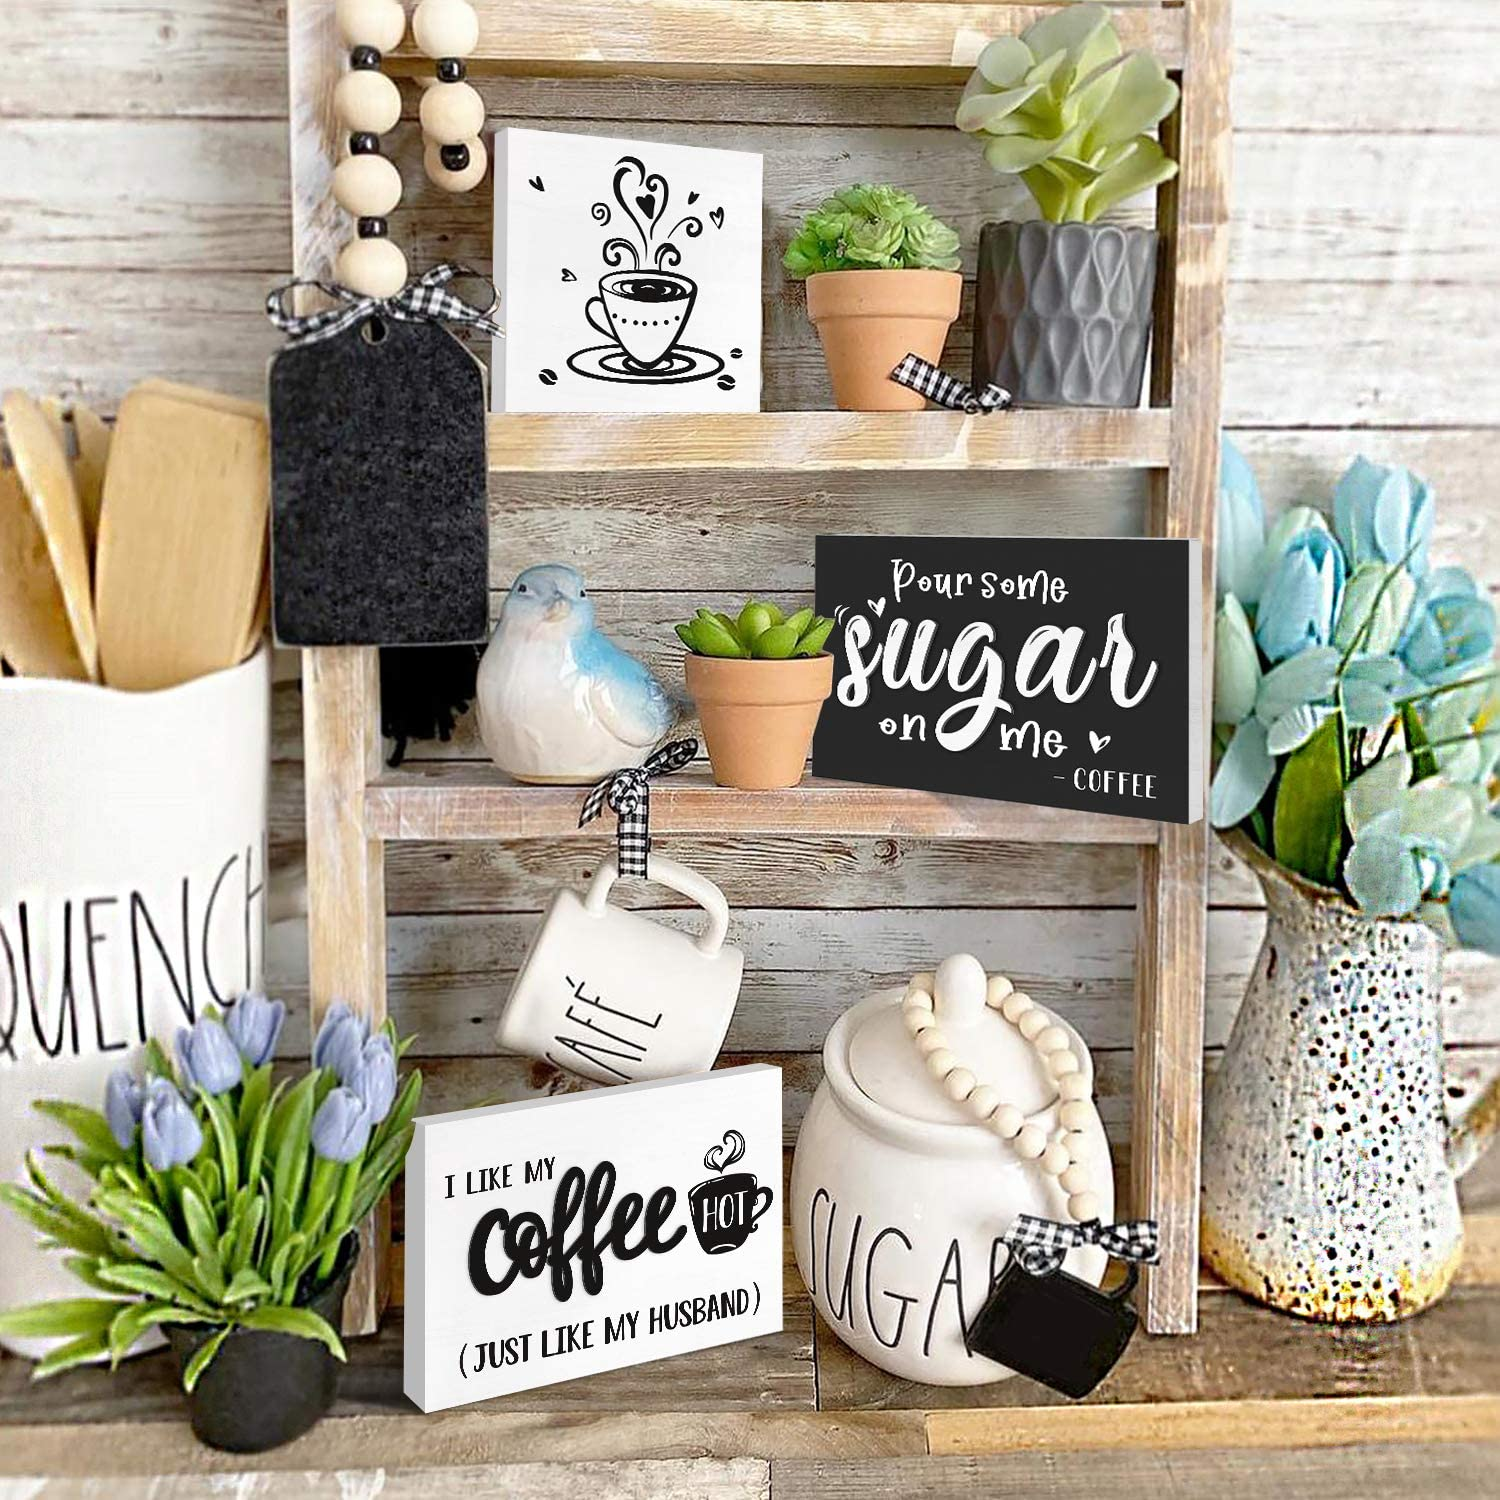 Easter Sign Farmhouse Decor Rae Dunn Inspired Mini Coffee Bar Sign Farmhouse Miniature Miniature Sign Wood Framed Tiered Tray Sign